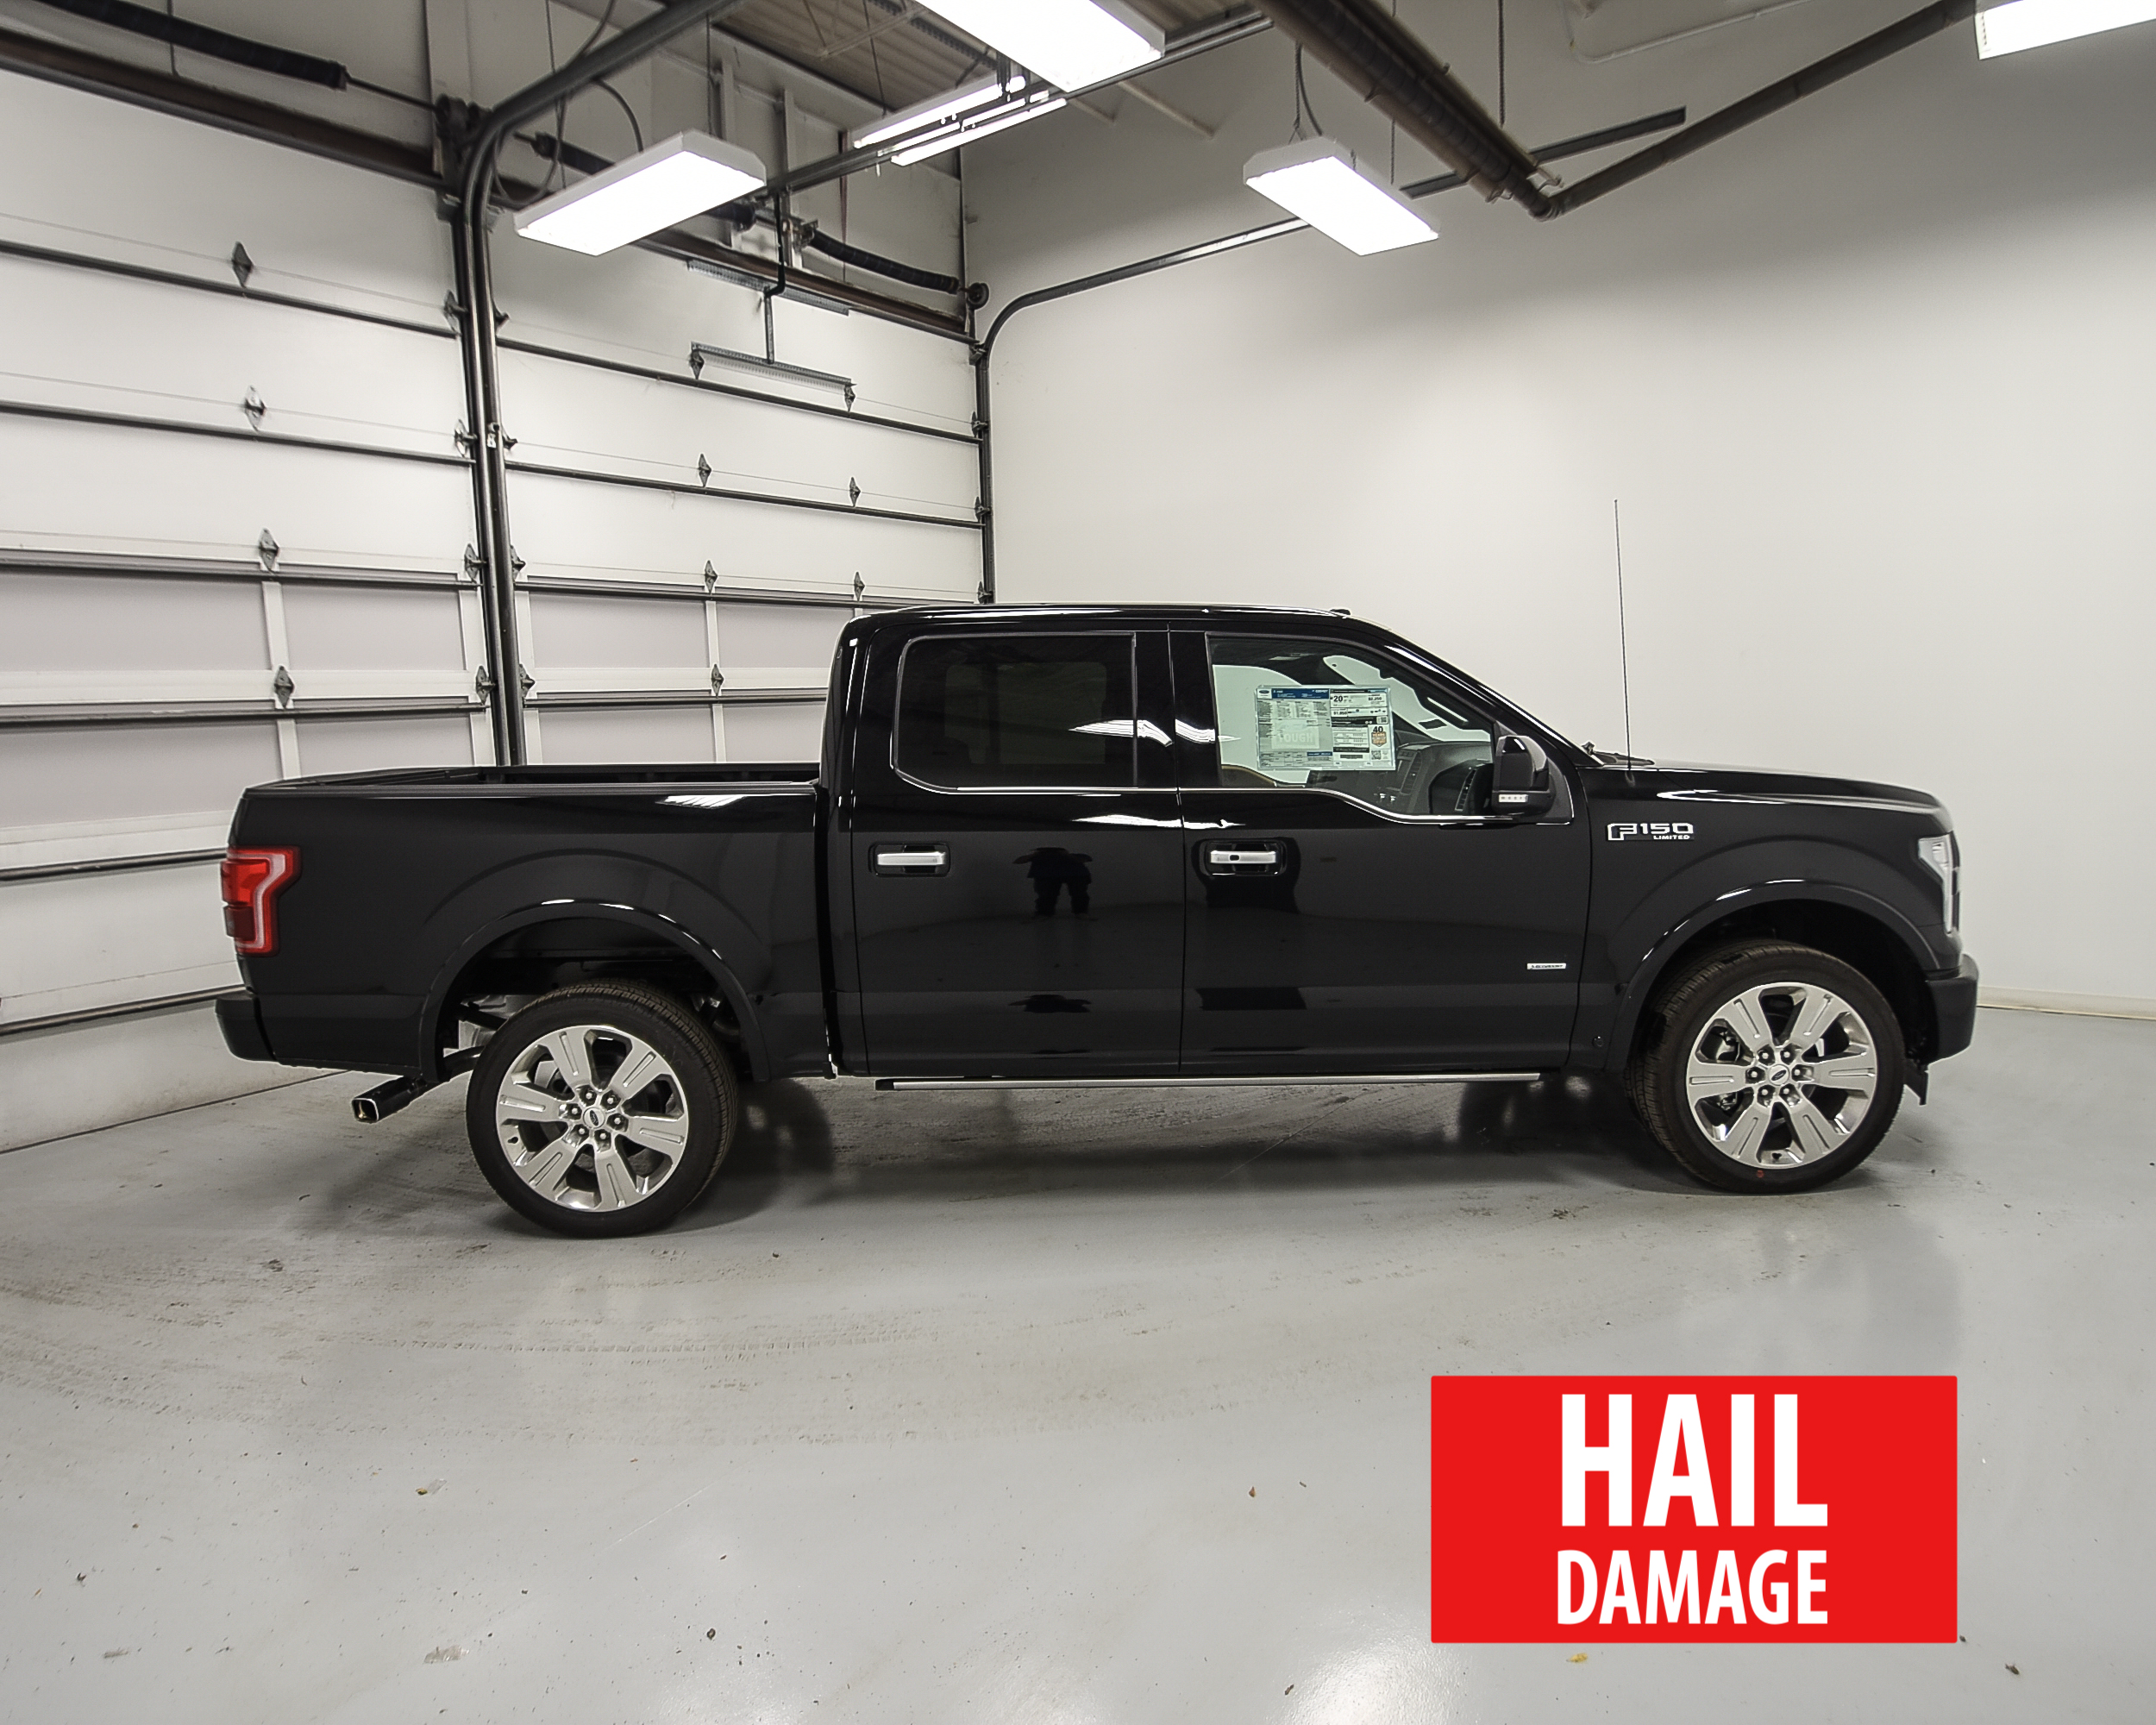 Woodhouse Ford Hail Damaged Vehicles Autos Post